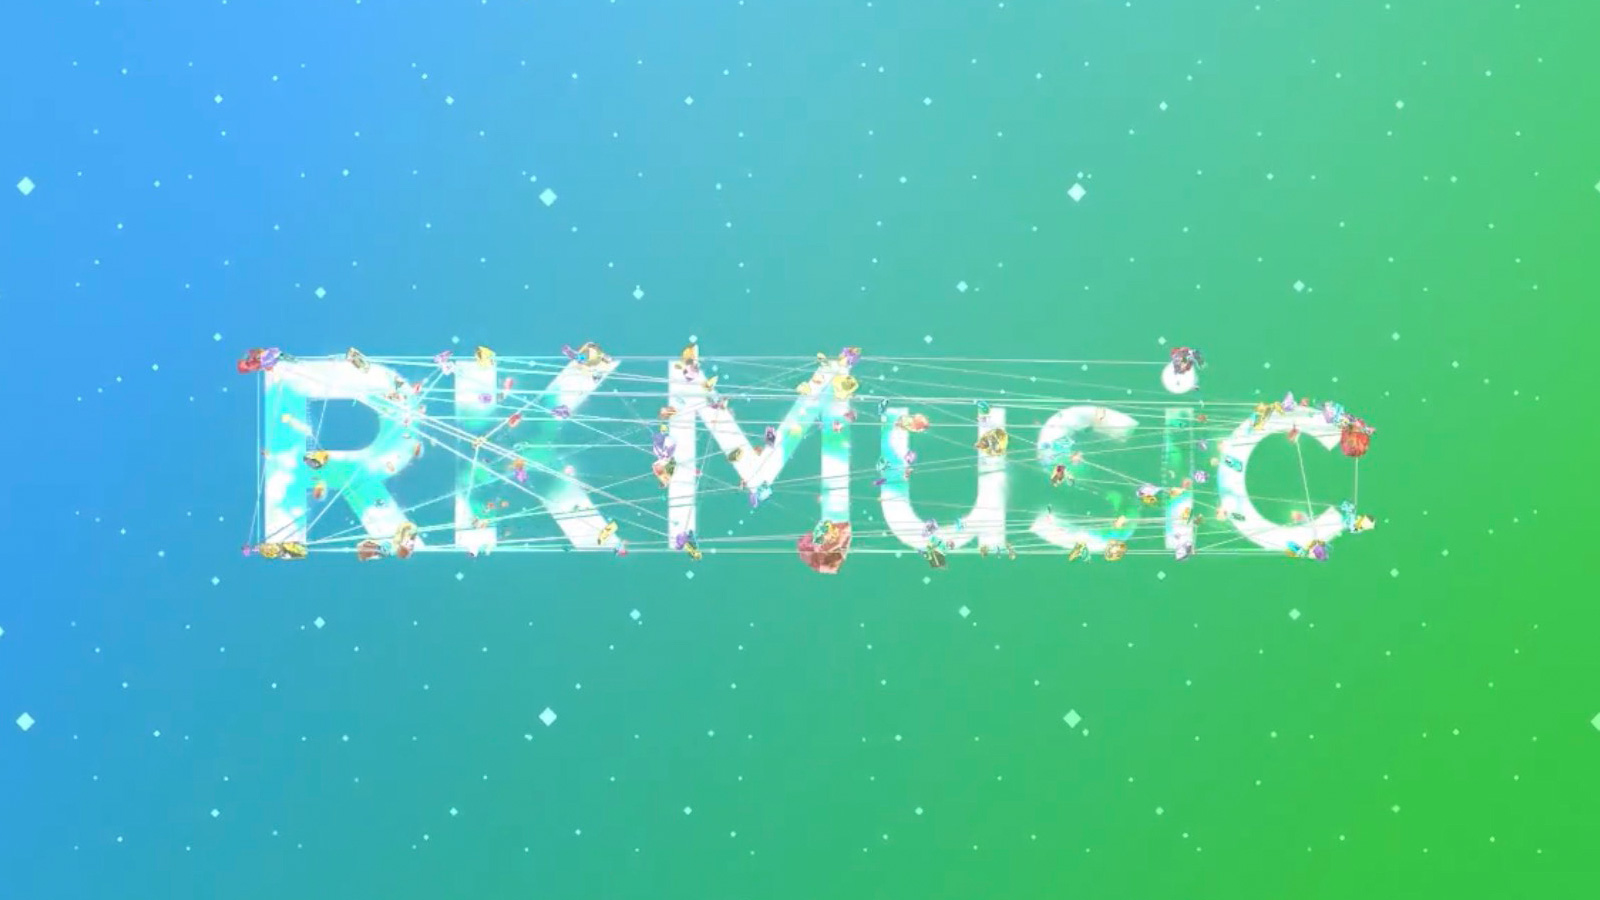 Motion logo for RK Music